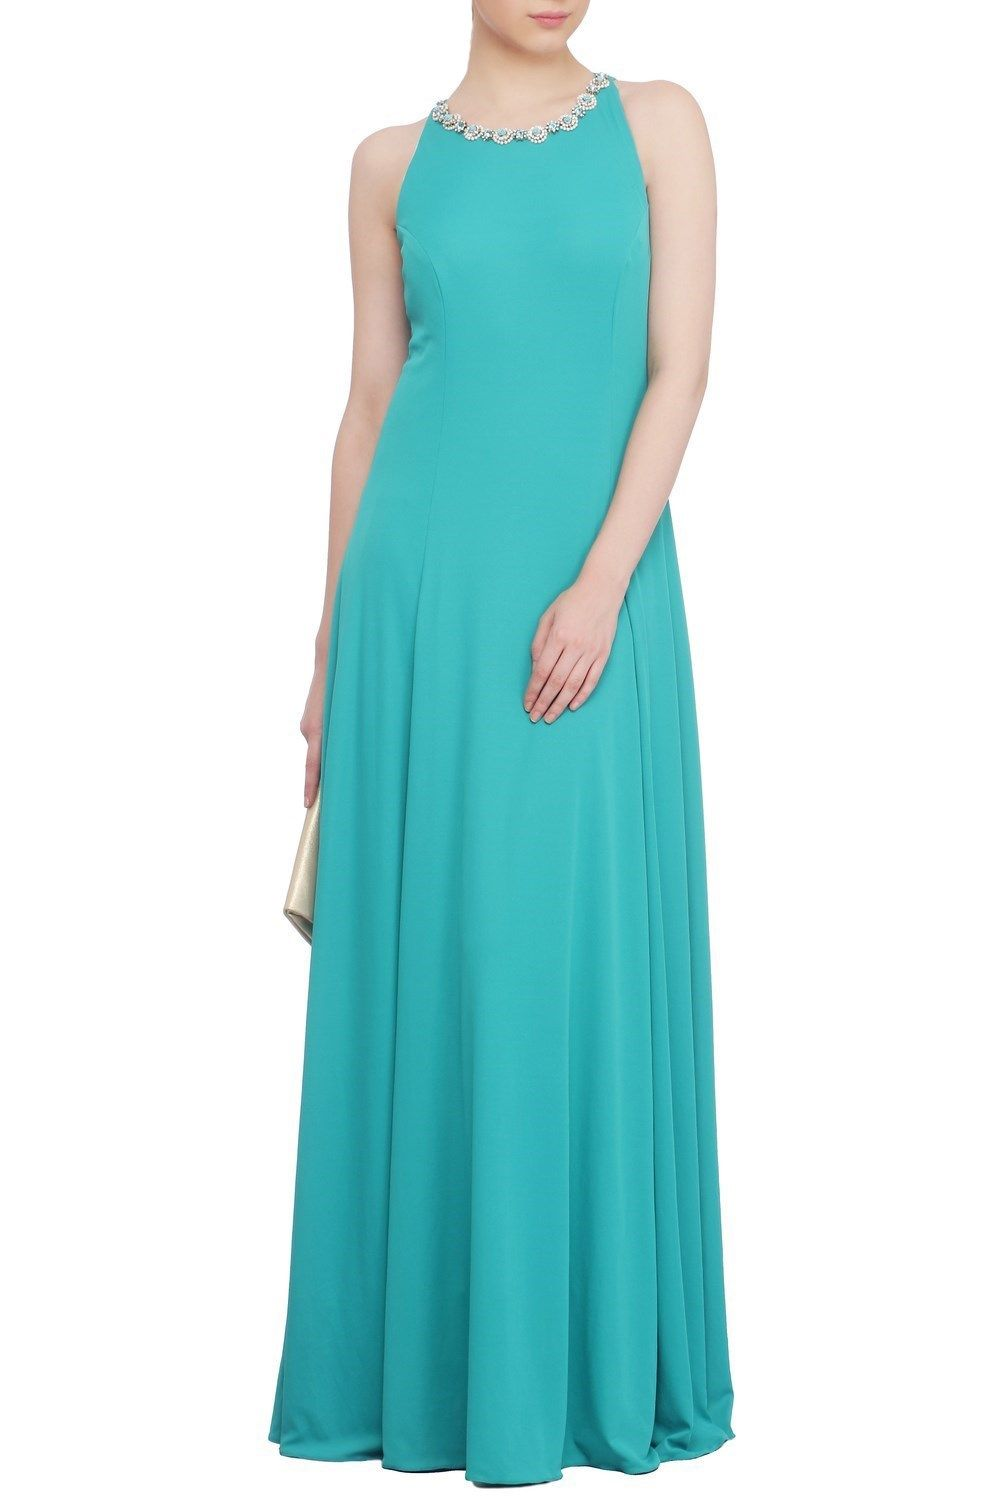 Turquoise Blue Sleeveless Floor Length Party Wear Gown @ looksgud.in ...